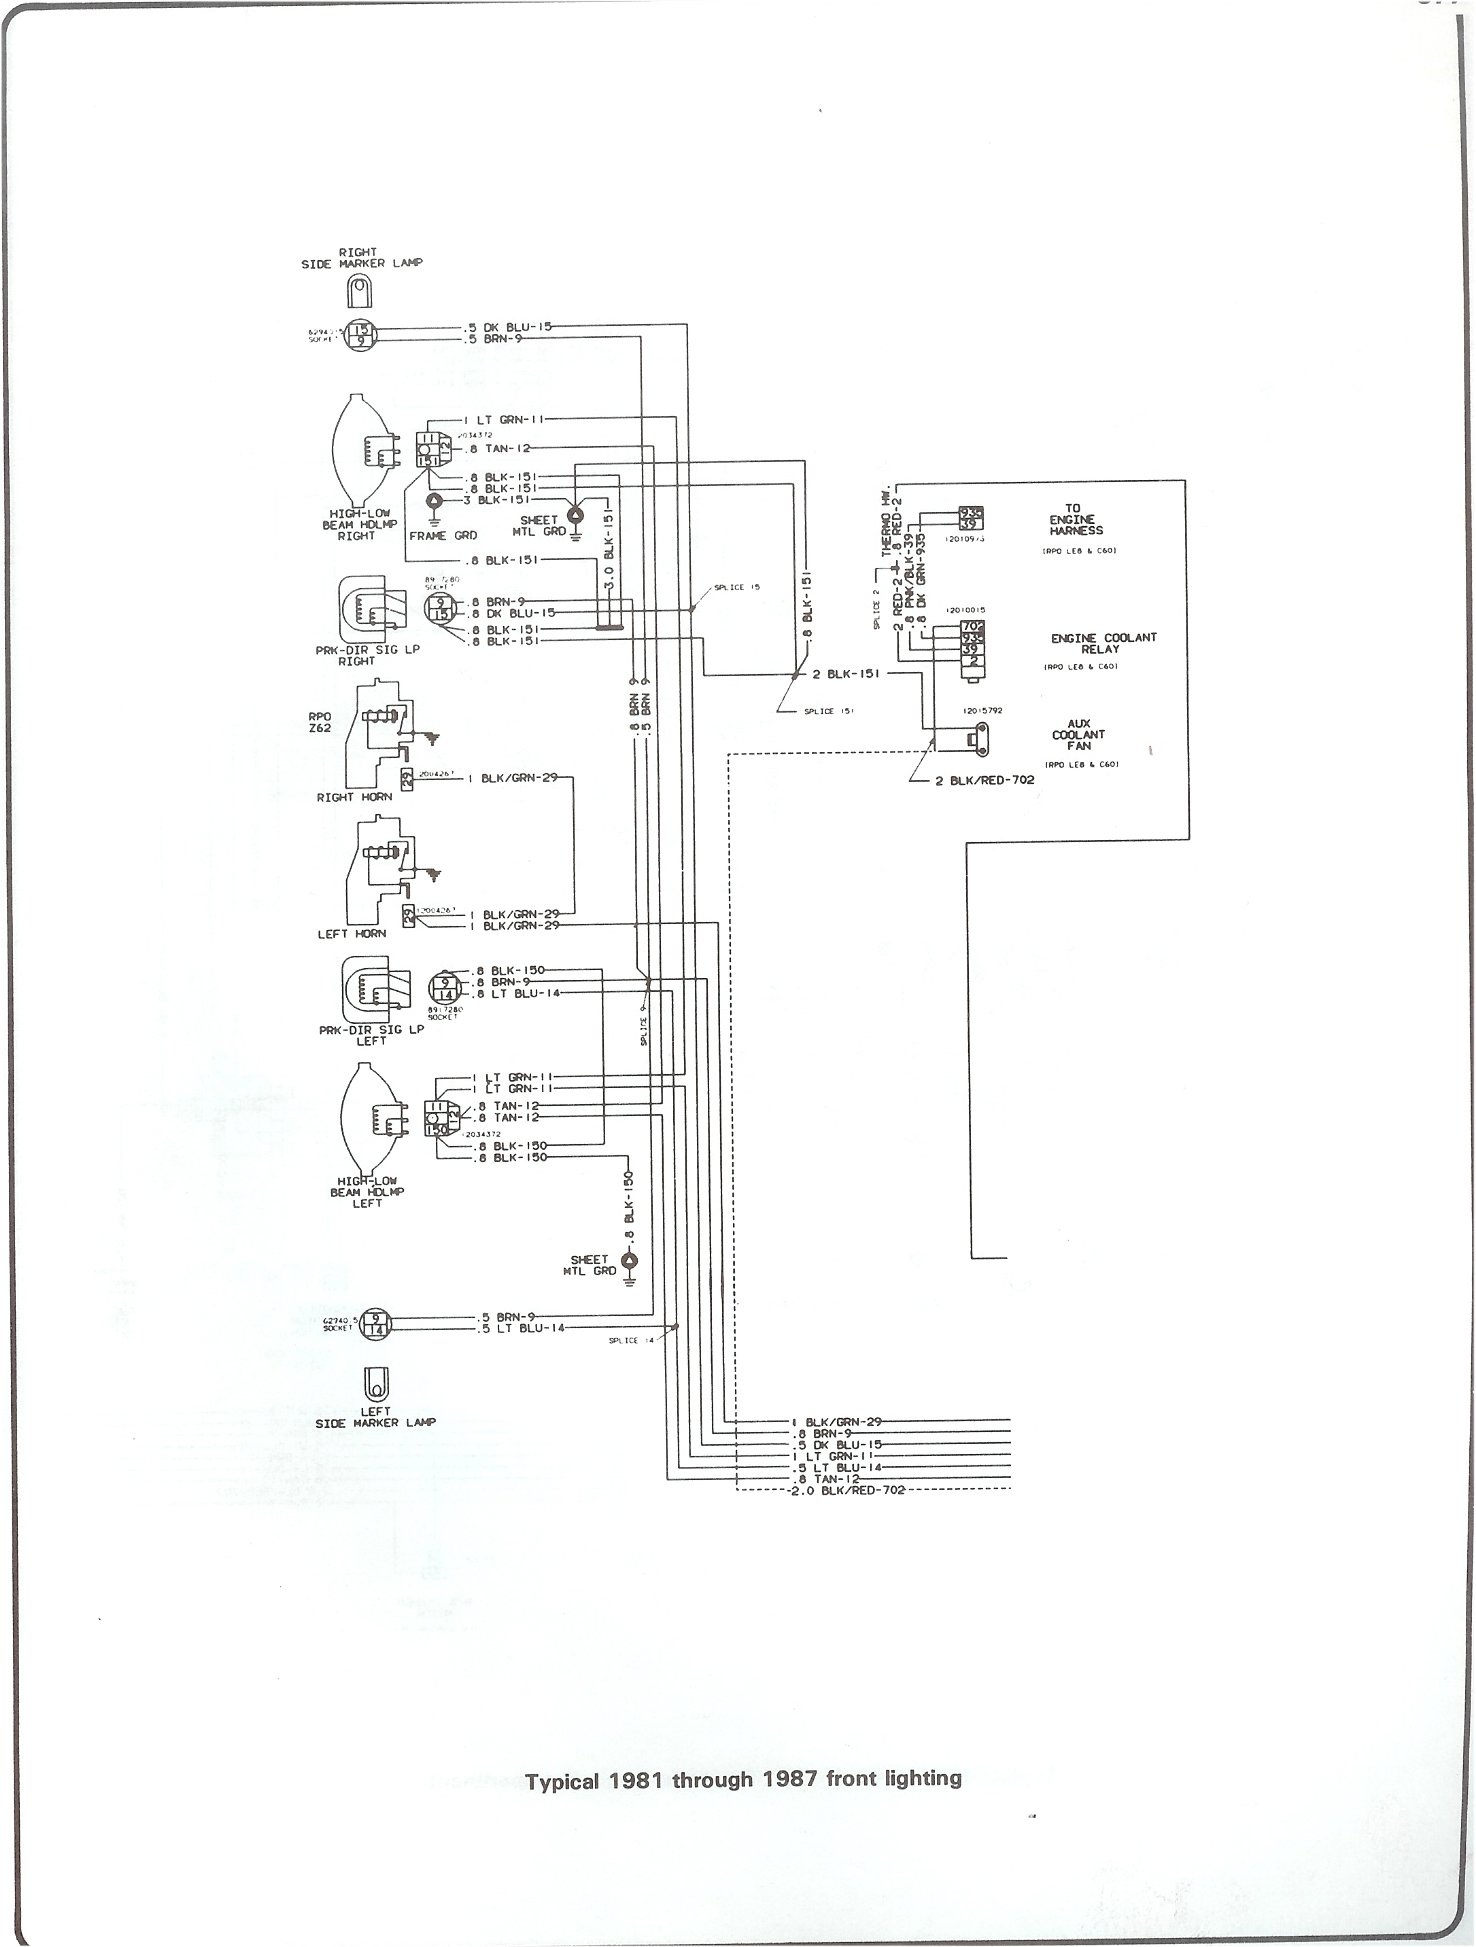 complete 73 87 wiring diagrams rh forum 73 87chevytrucks com 1994 s10 headlight wiring diagram 1994 s10 headlight wiring diagram